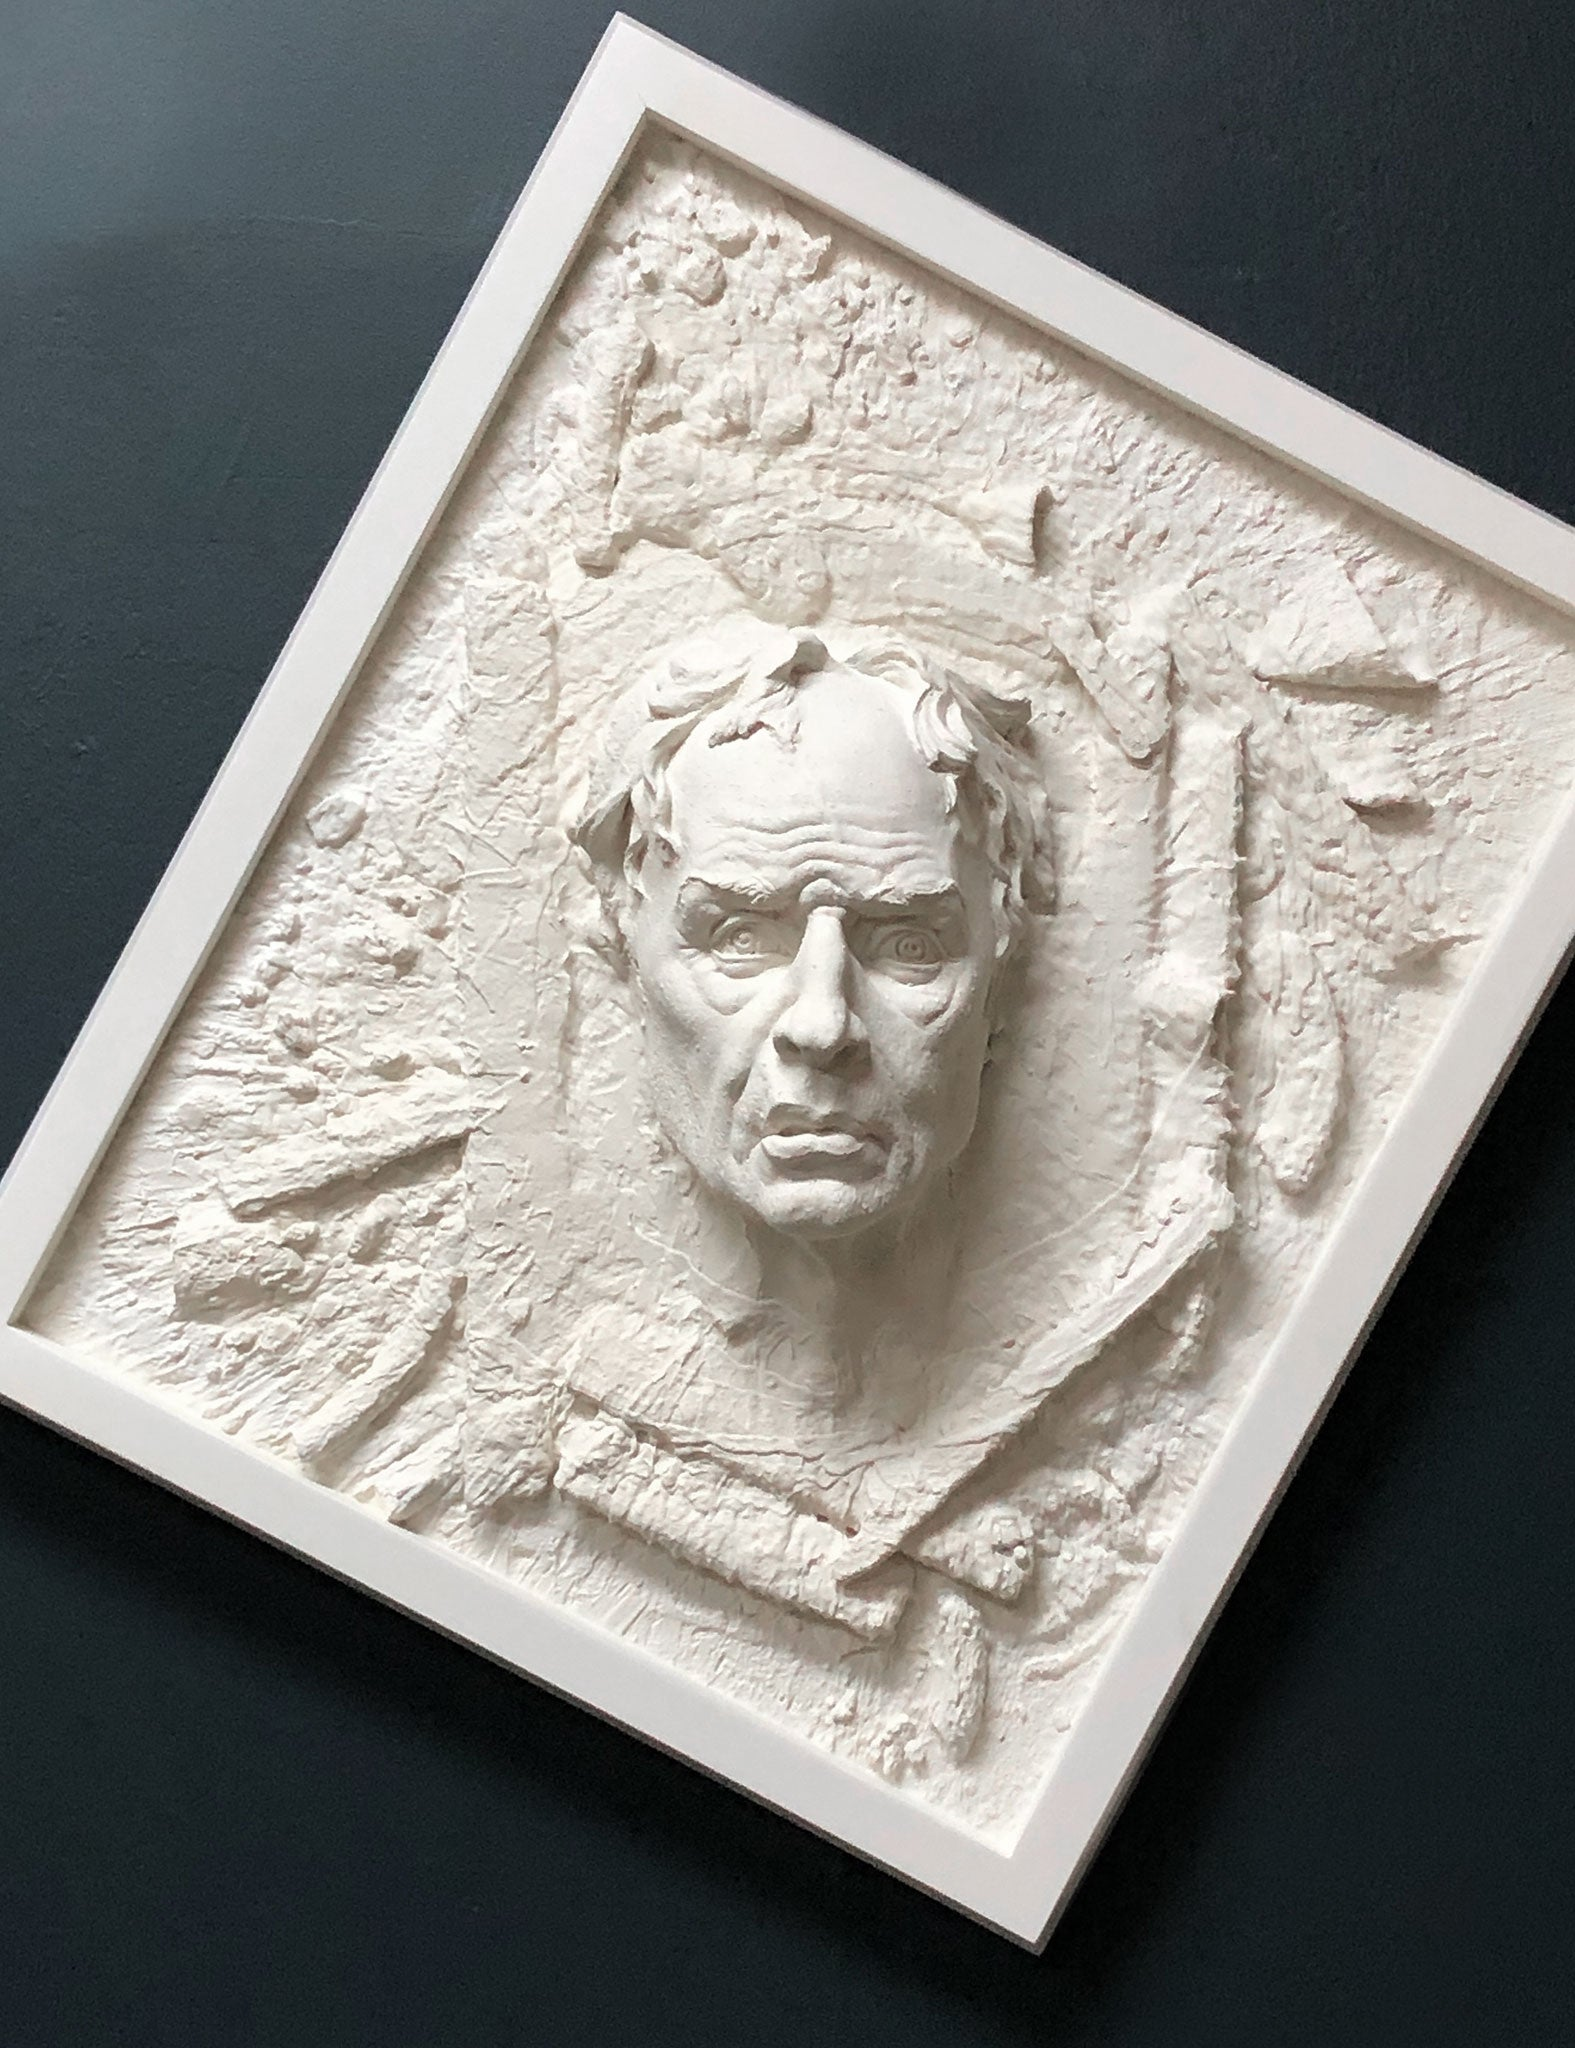 Plaster wall sculpture of abstract crazy man in frame by Philippe Faraut